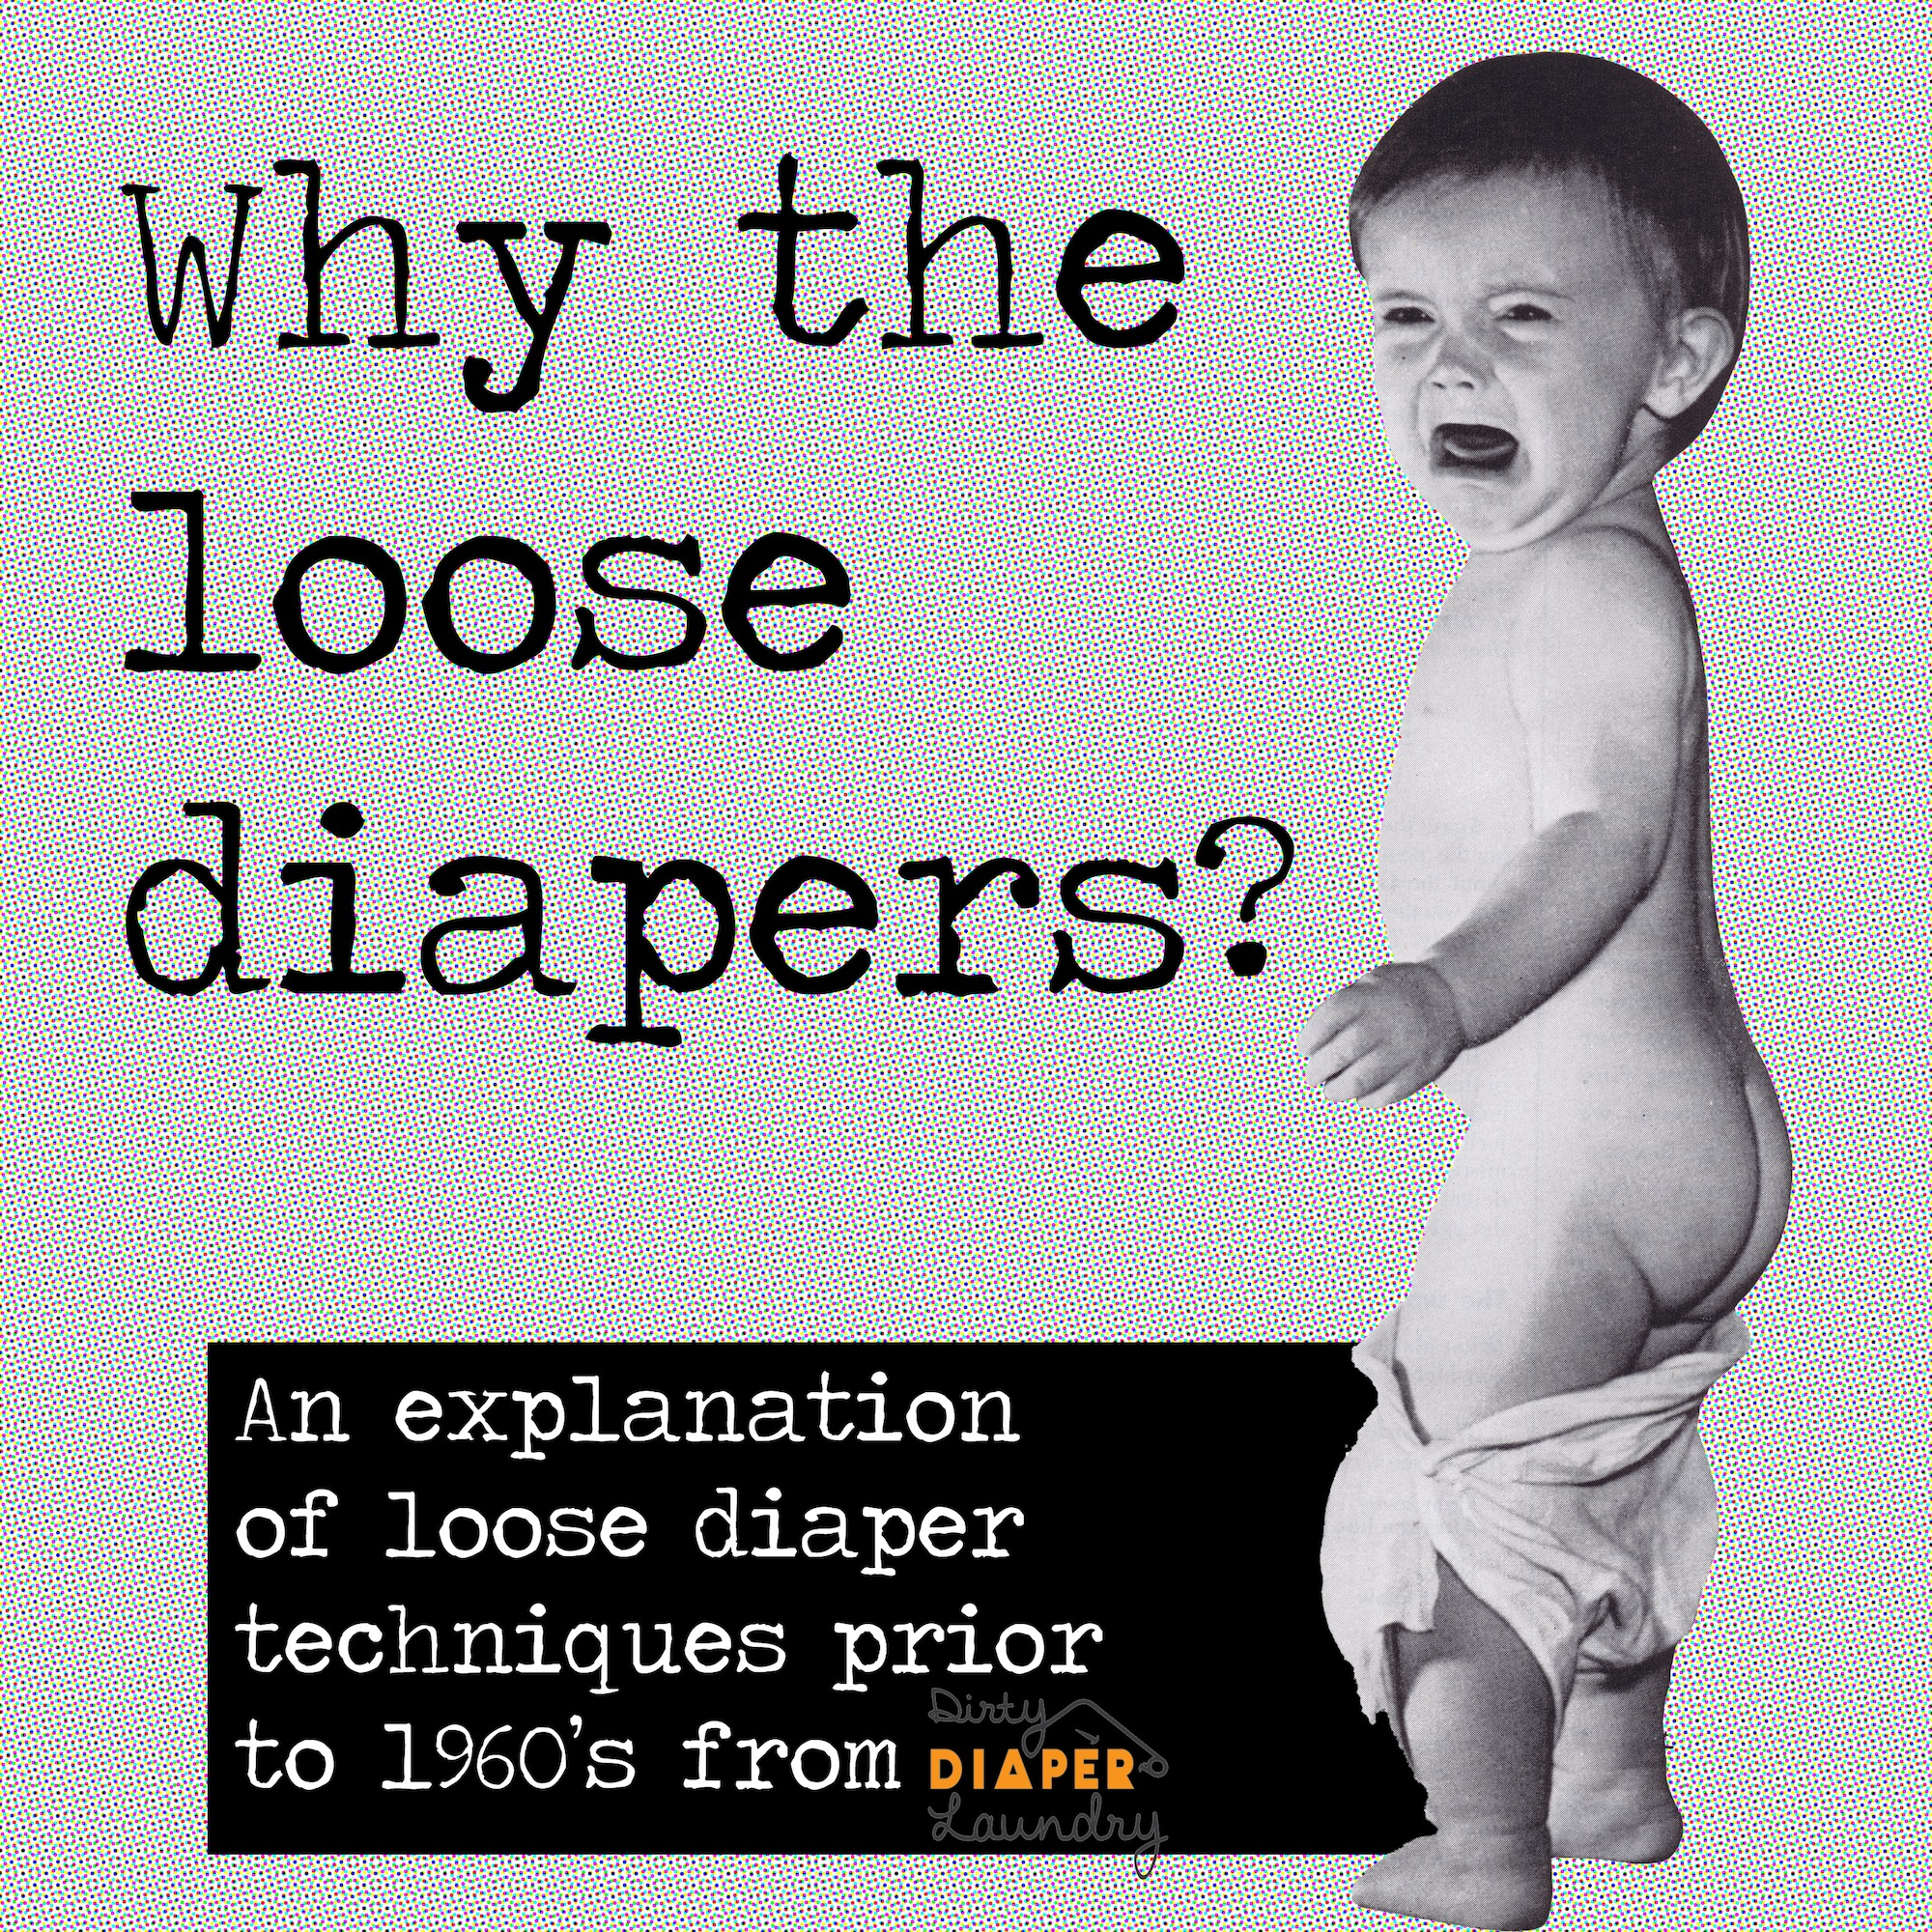 Why the loose diaper? www.dirtydiaperlaundry.com explains why diapers were worn loosely by babies in old photographs.